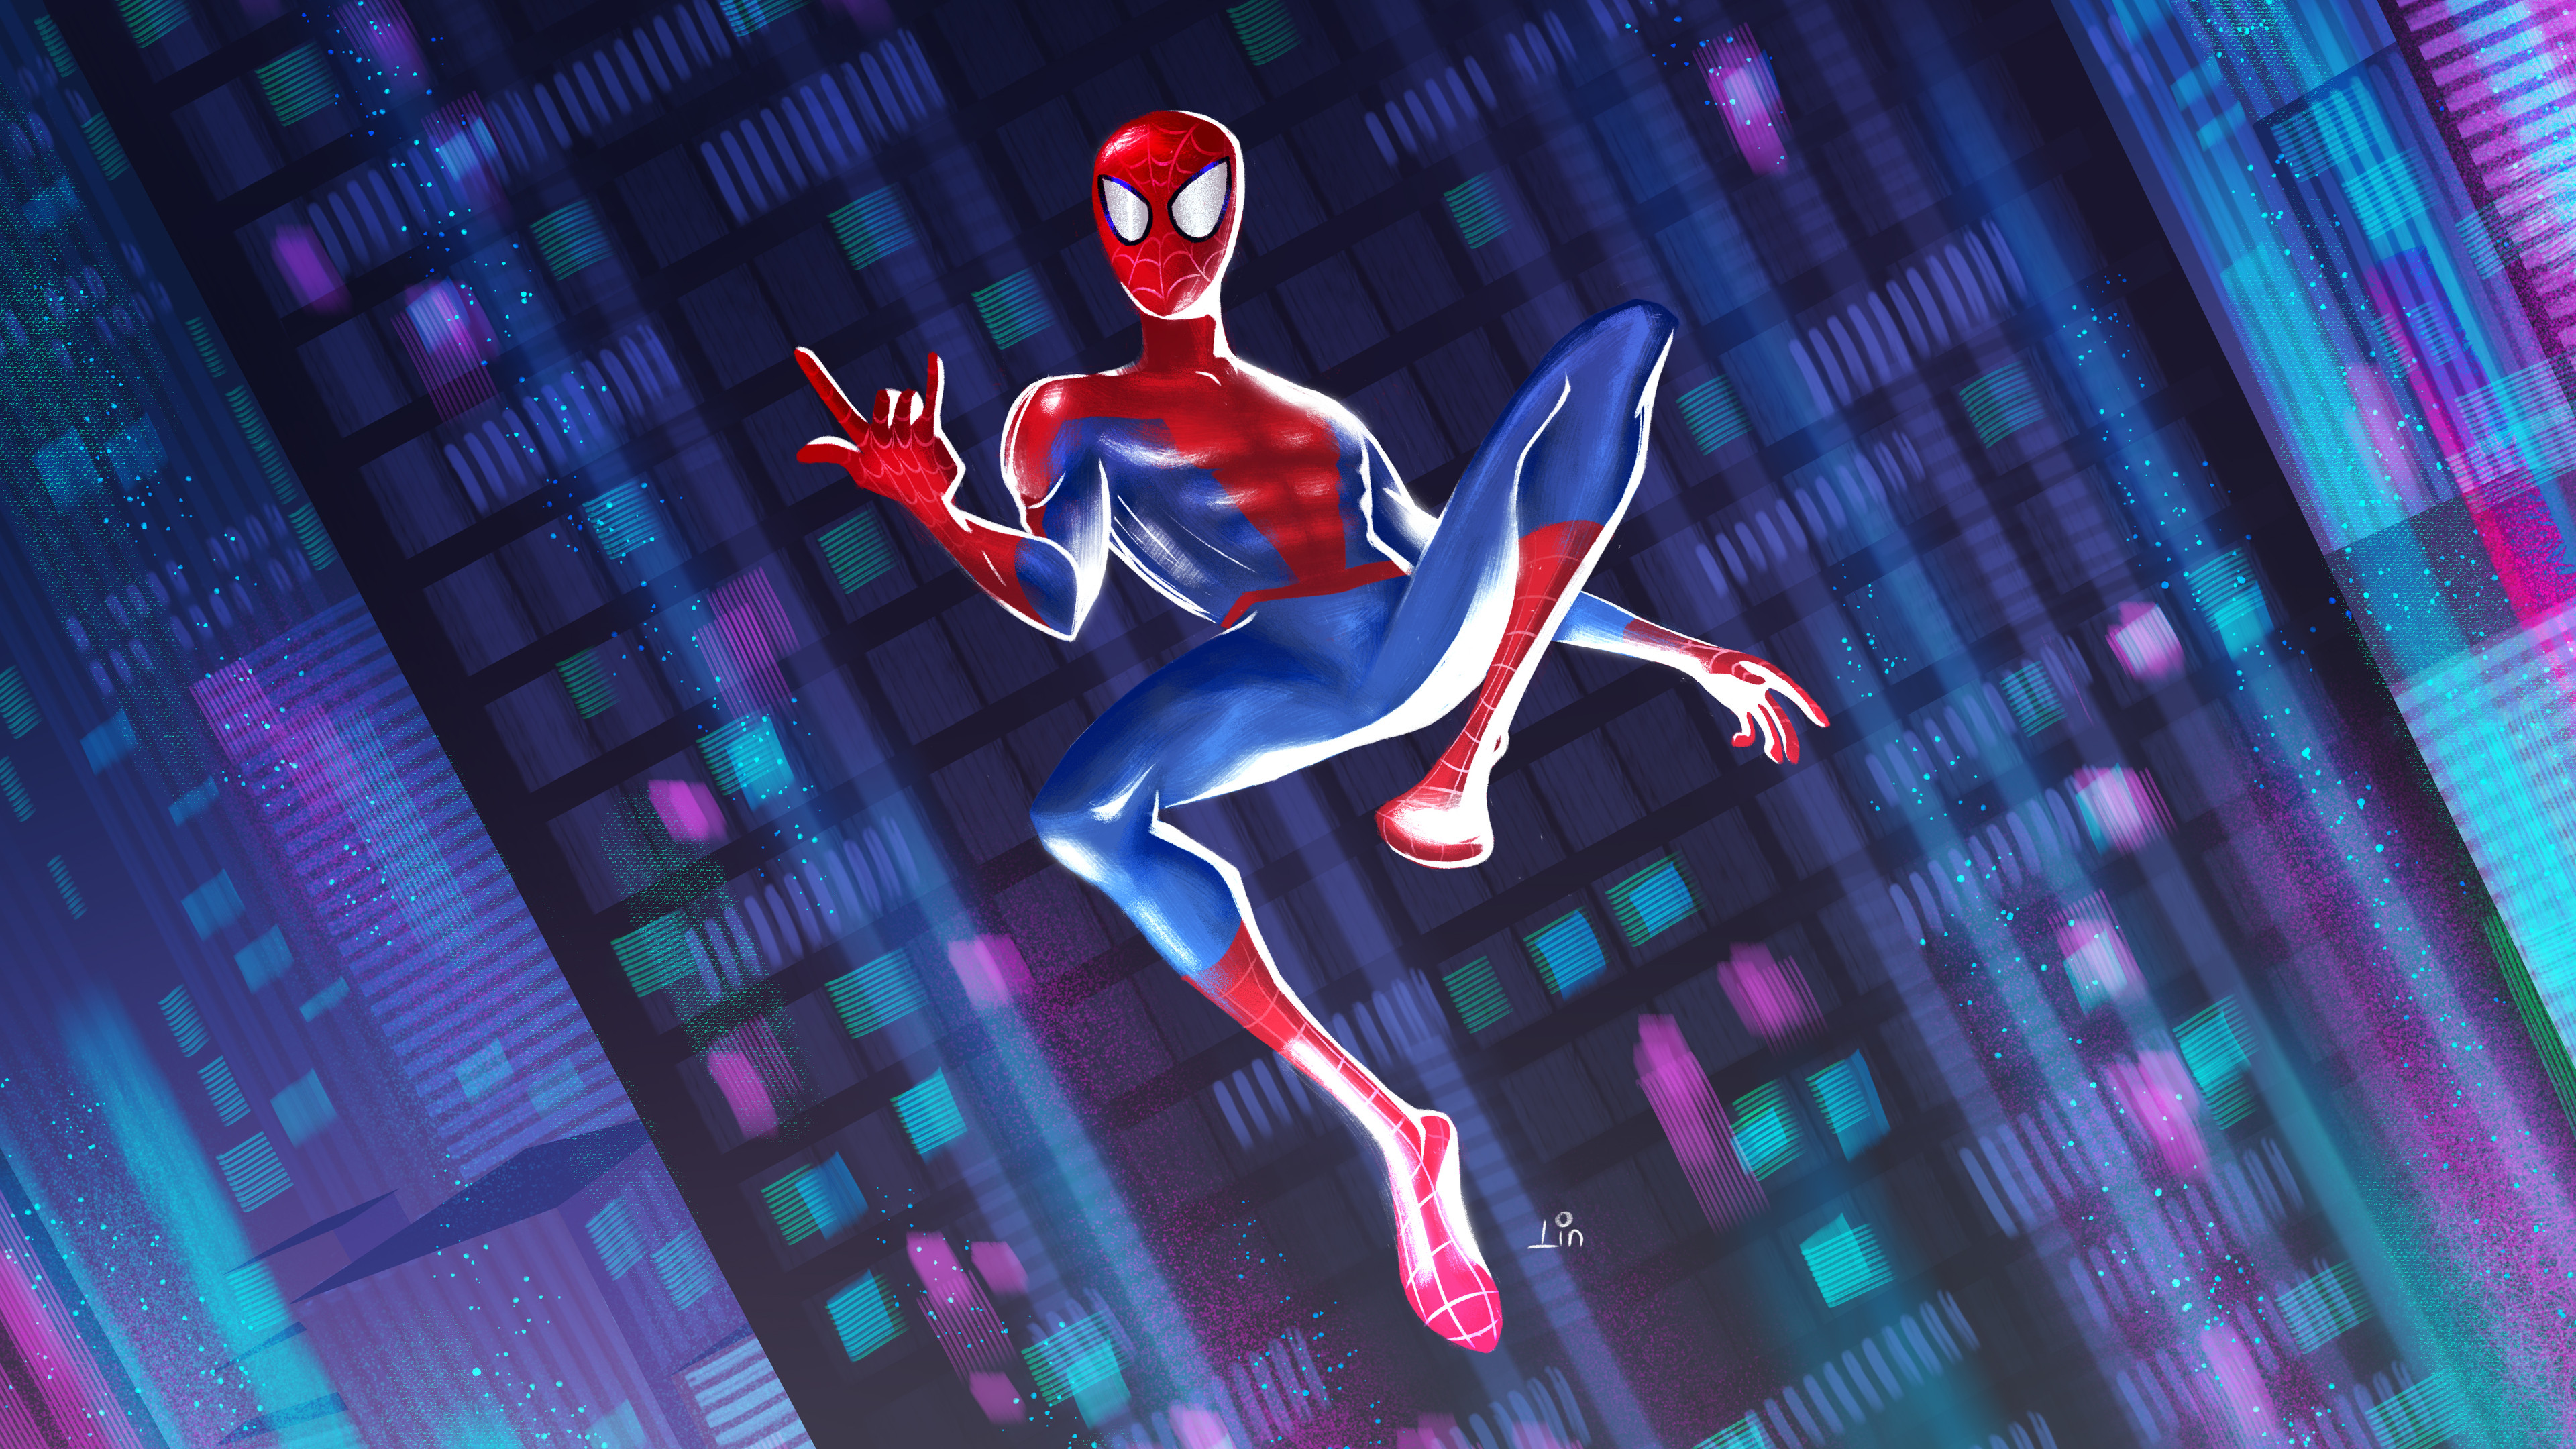 This is a fanart I drew to show the love for this animated movie! Spider-man : Into The Spider Verse is an inspiration!!!!!! You know, I am a fan of comic books, and really, such a joy and entertaining to watch it comes to life!!!